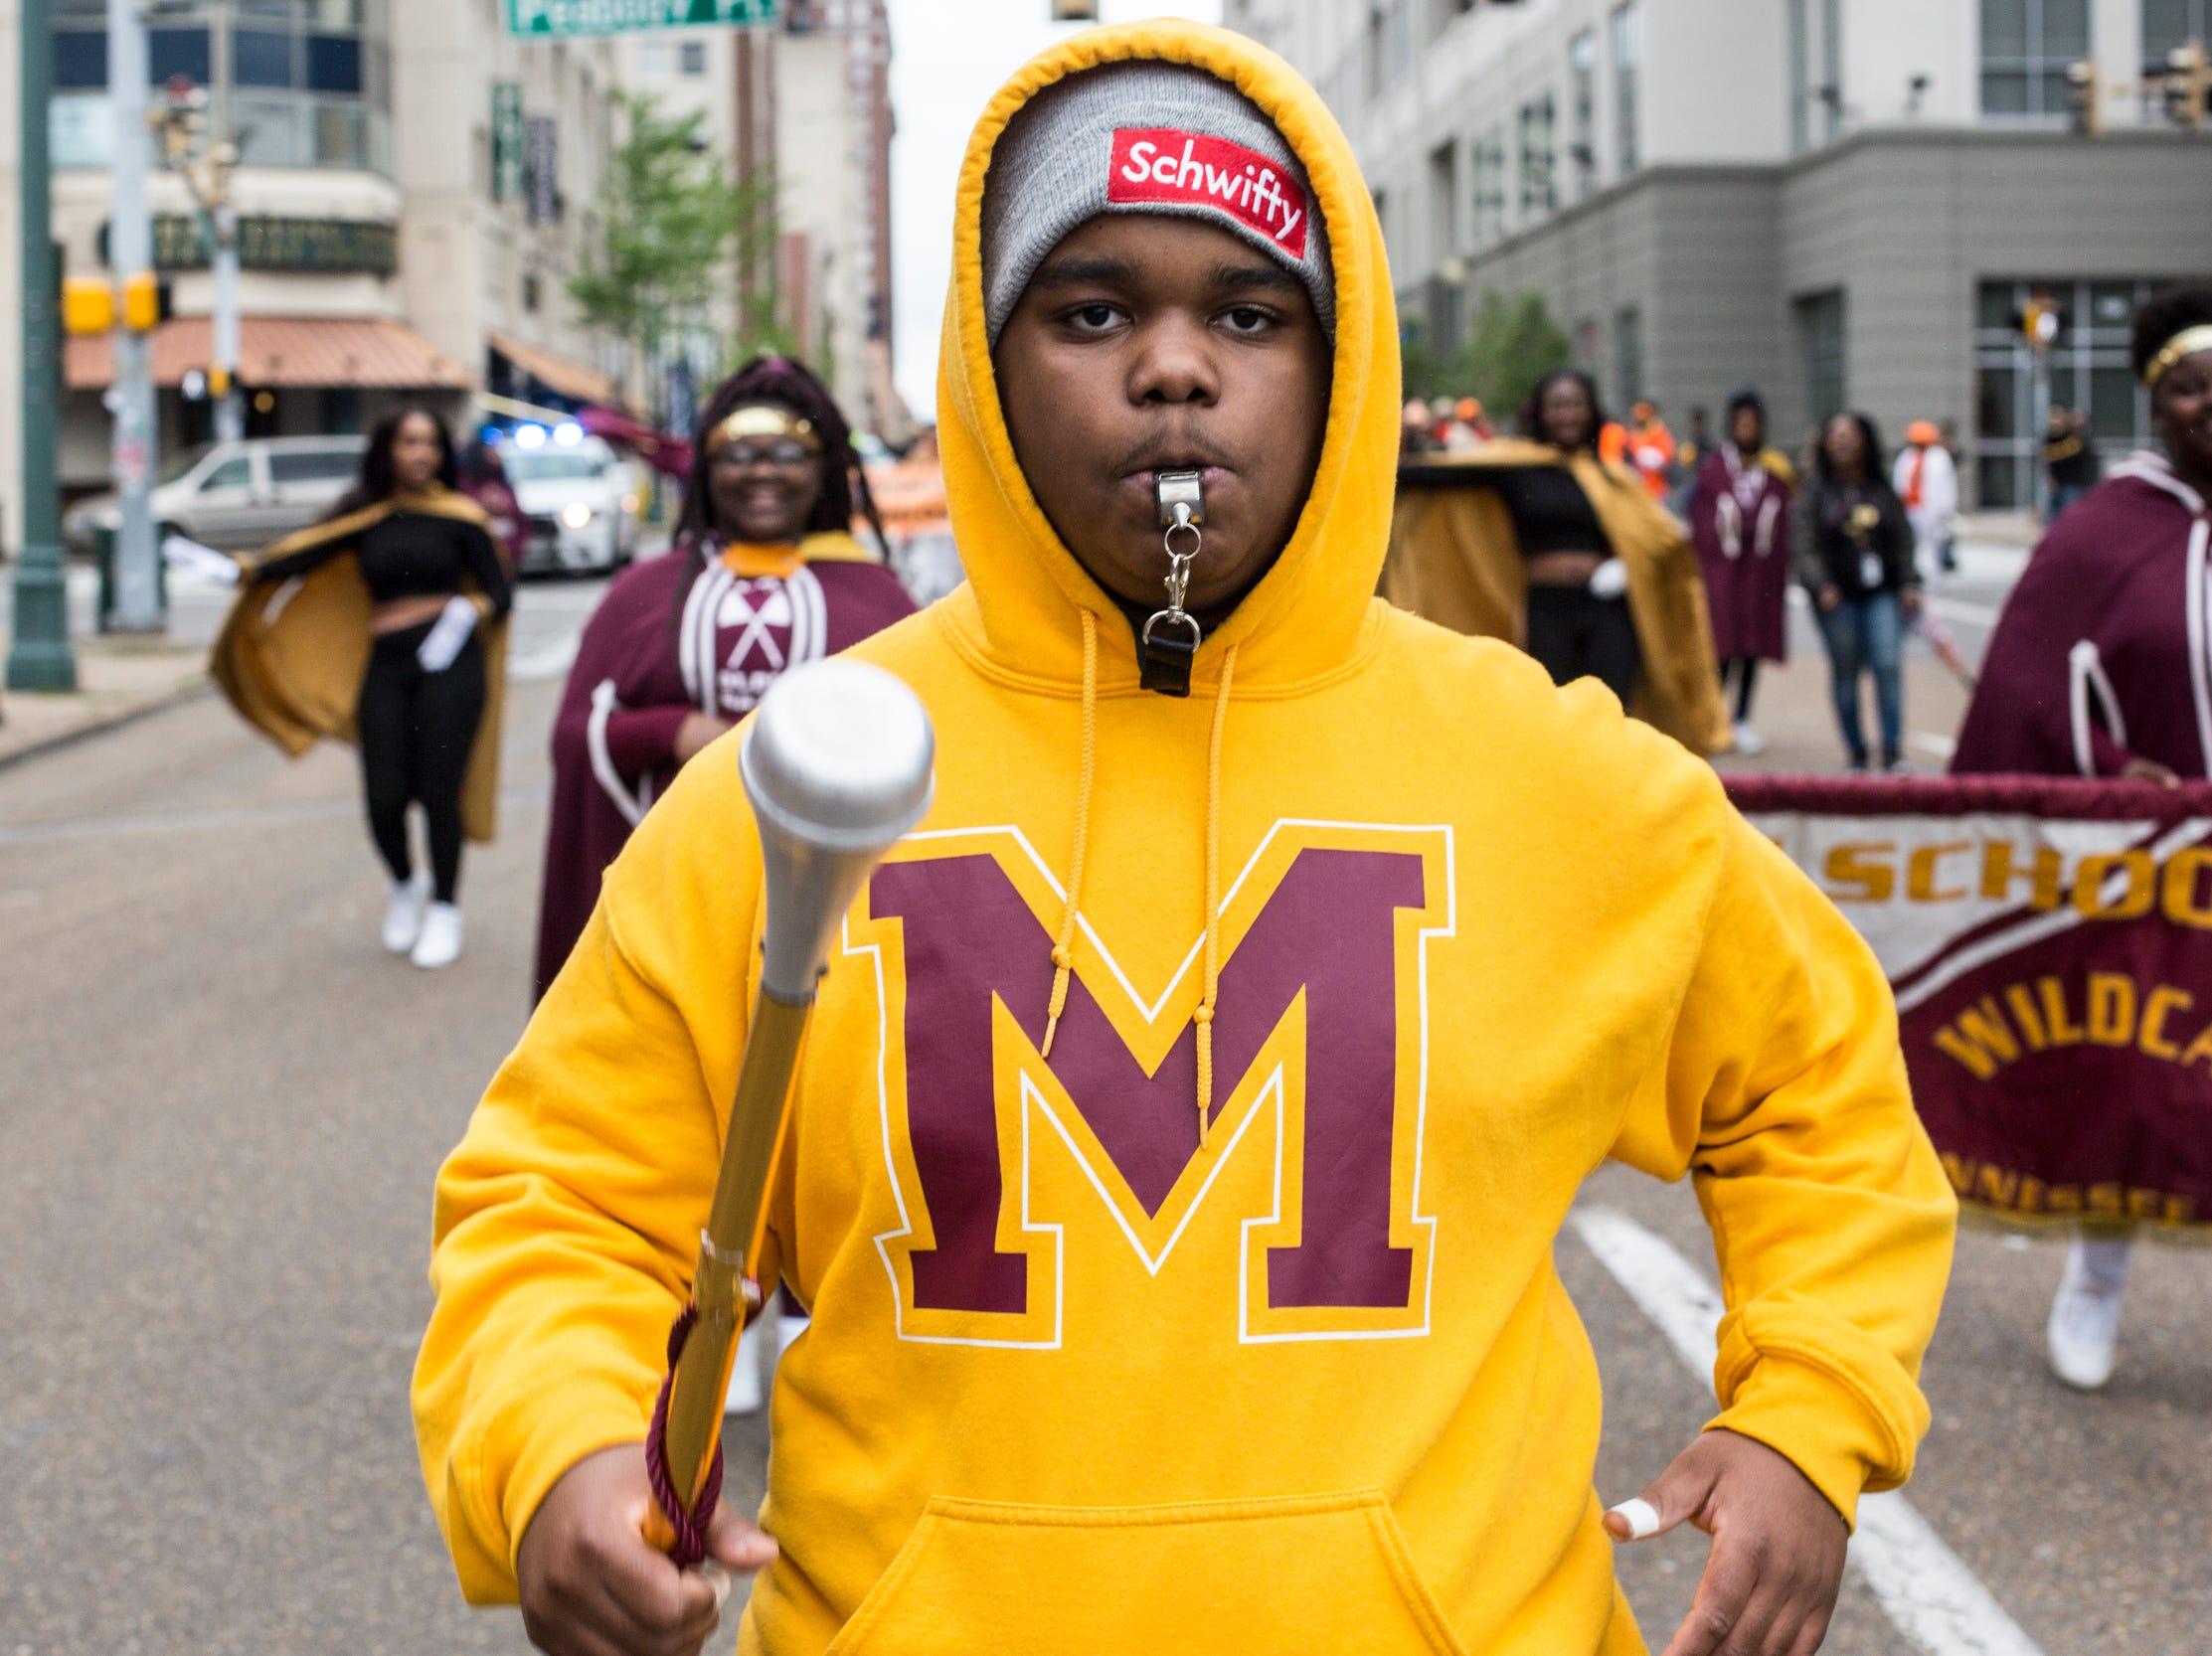 A band member marches during the Africa in April International Diversity Parade on Friday, April 19, 2019. The 33rd annual Africa in April Cultural Awareness Festival runs through April 21 at Robert Church Park.